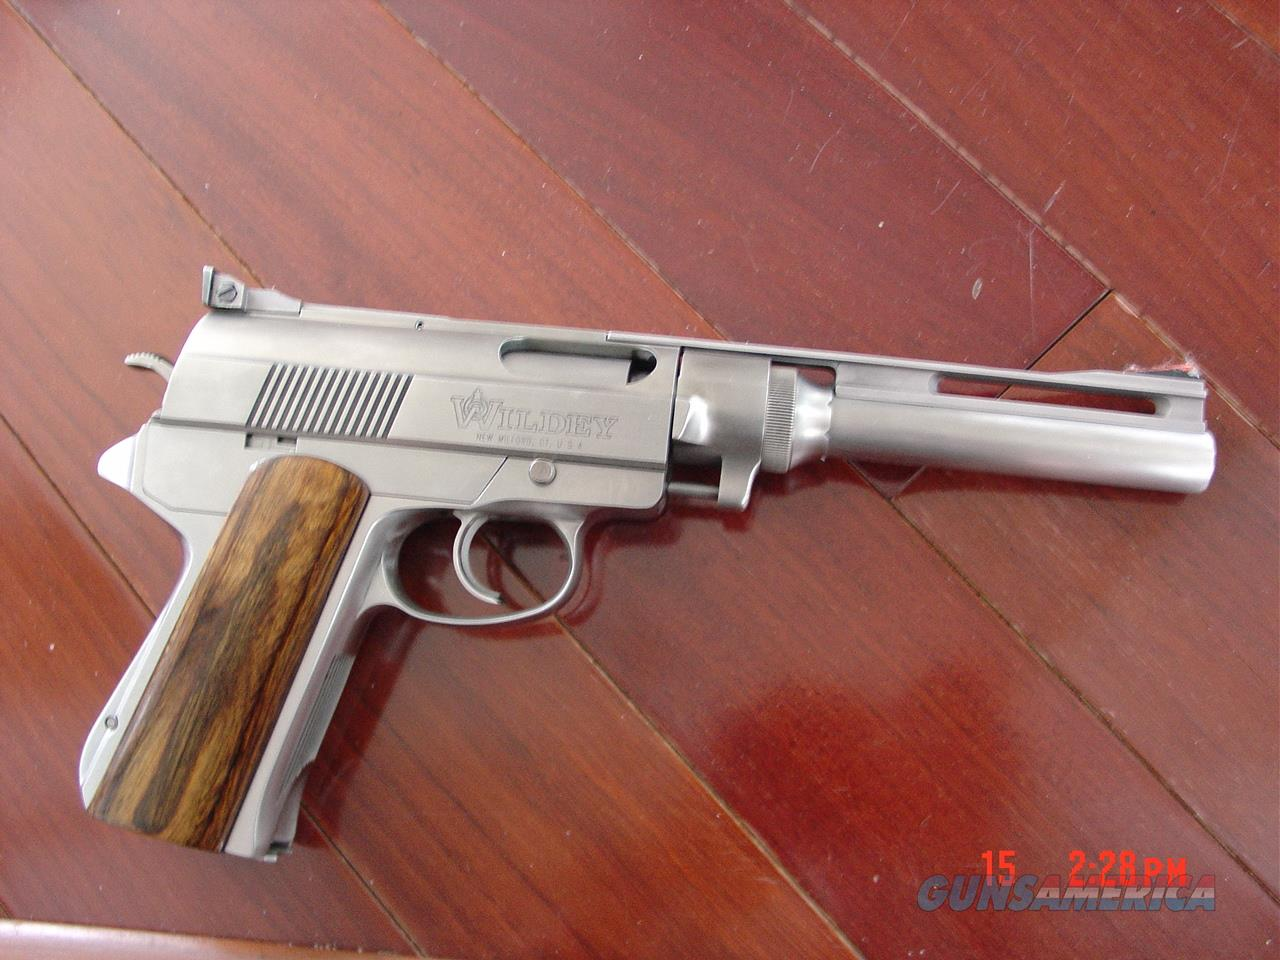 "Wildey Survivor 8"" vented rib hand cannon 45 Win Magnum,2 magazines,wood grips,gas operated,adjustable rear site,hard to find now. awesome power  Guns > Pistols > Wildey Pistols"